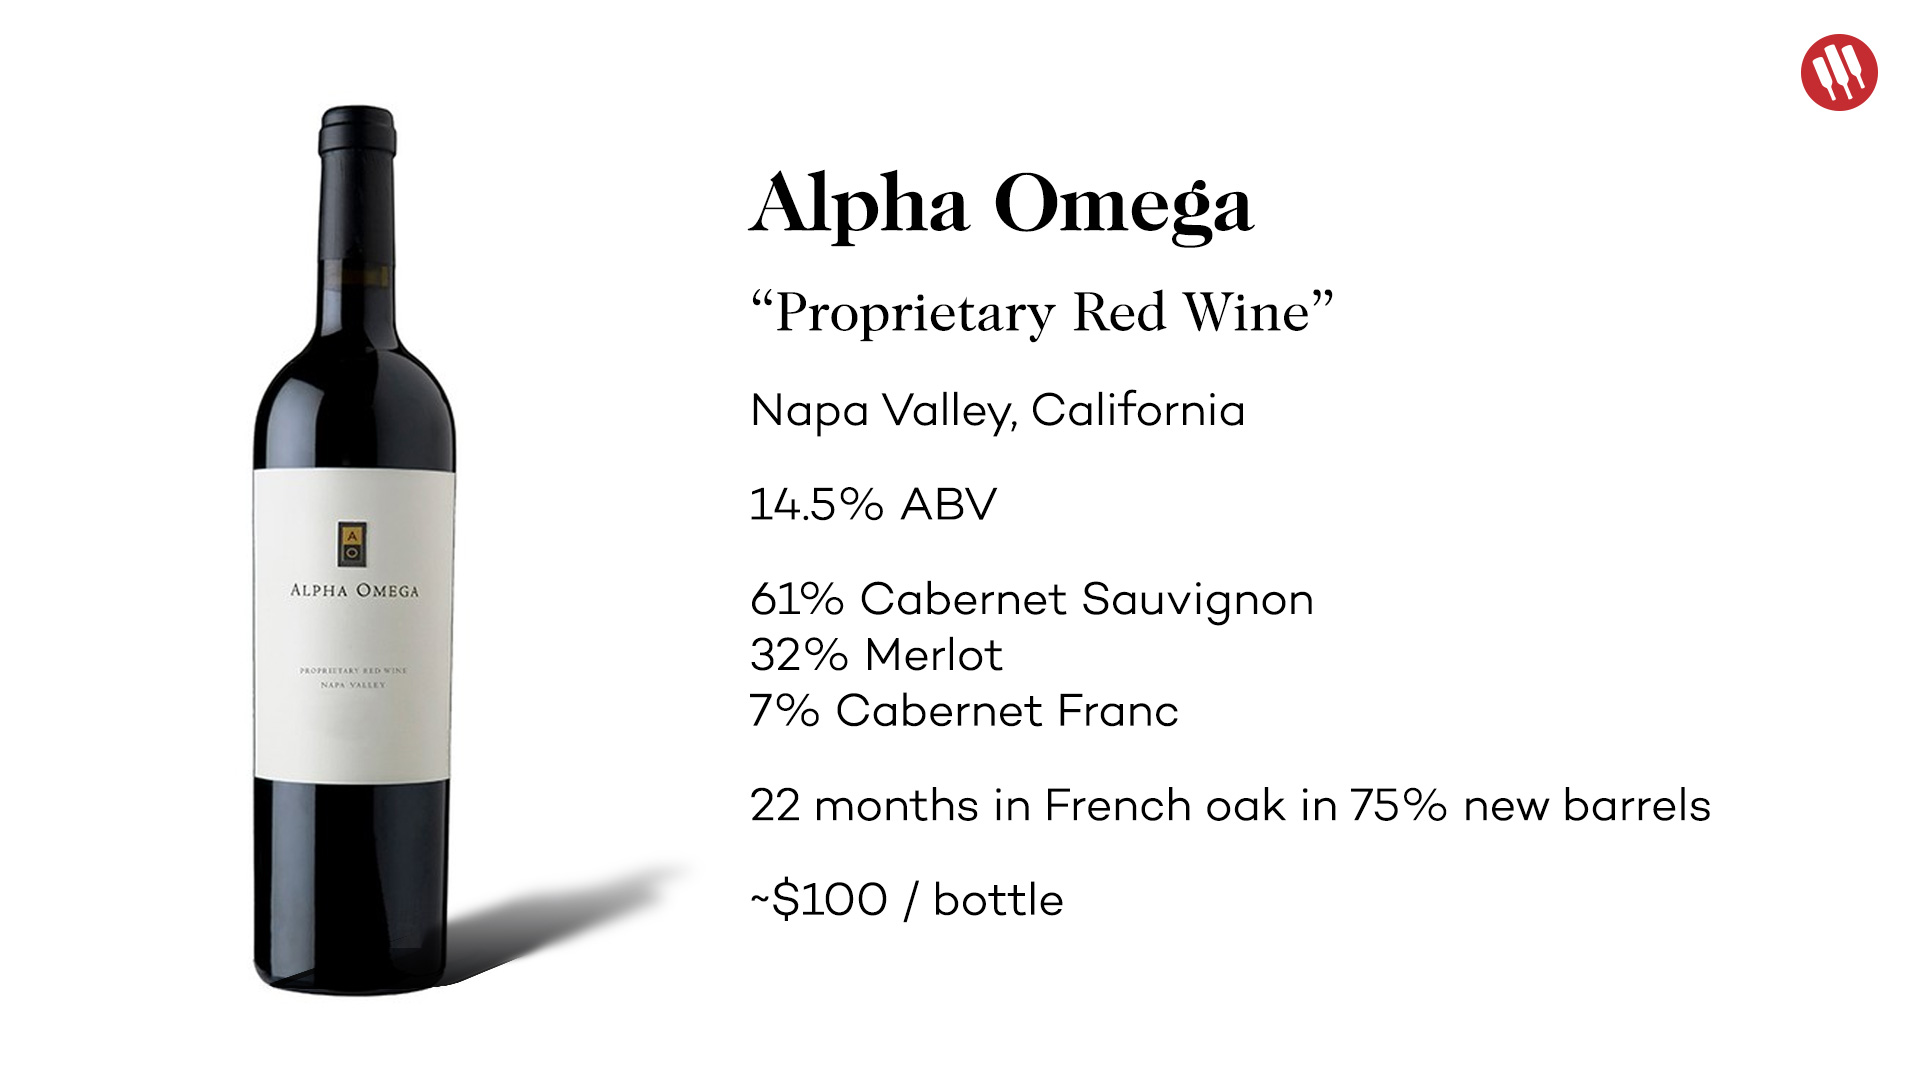 Alpha Omega Proprietary Red Wine 2013 Tasting Notes